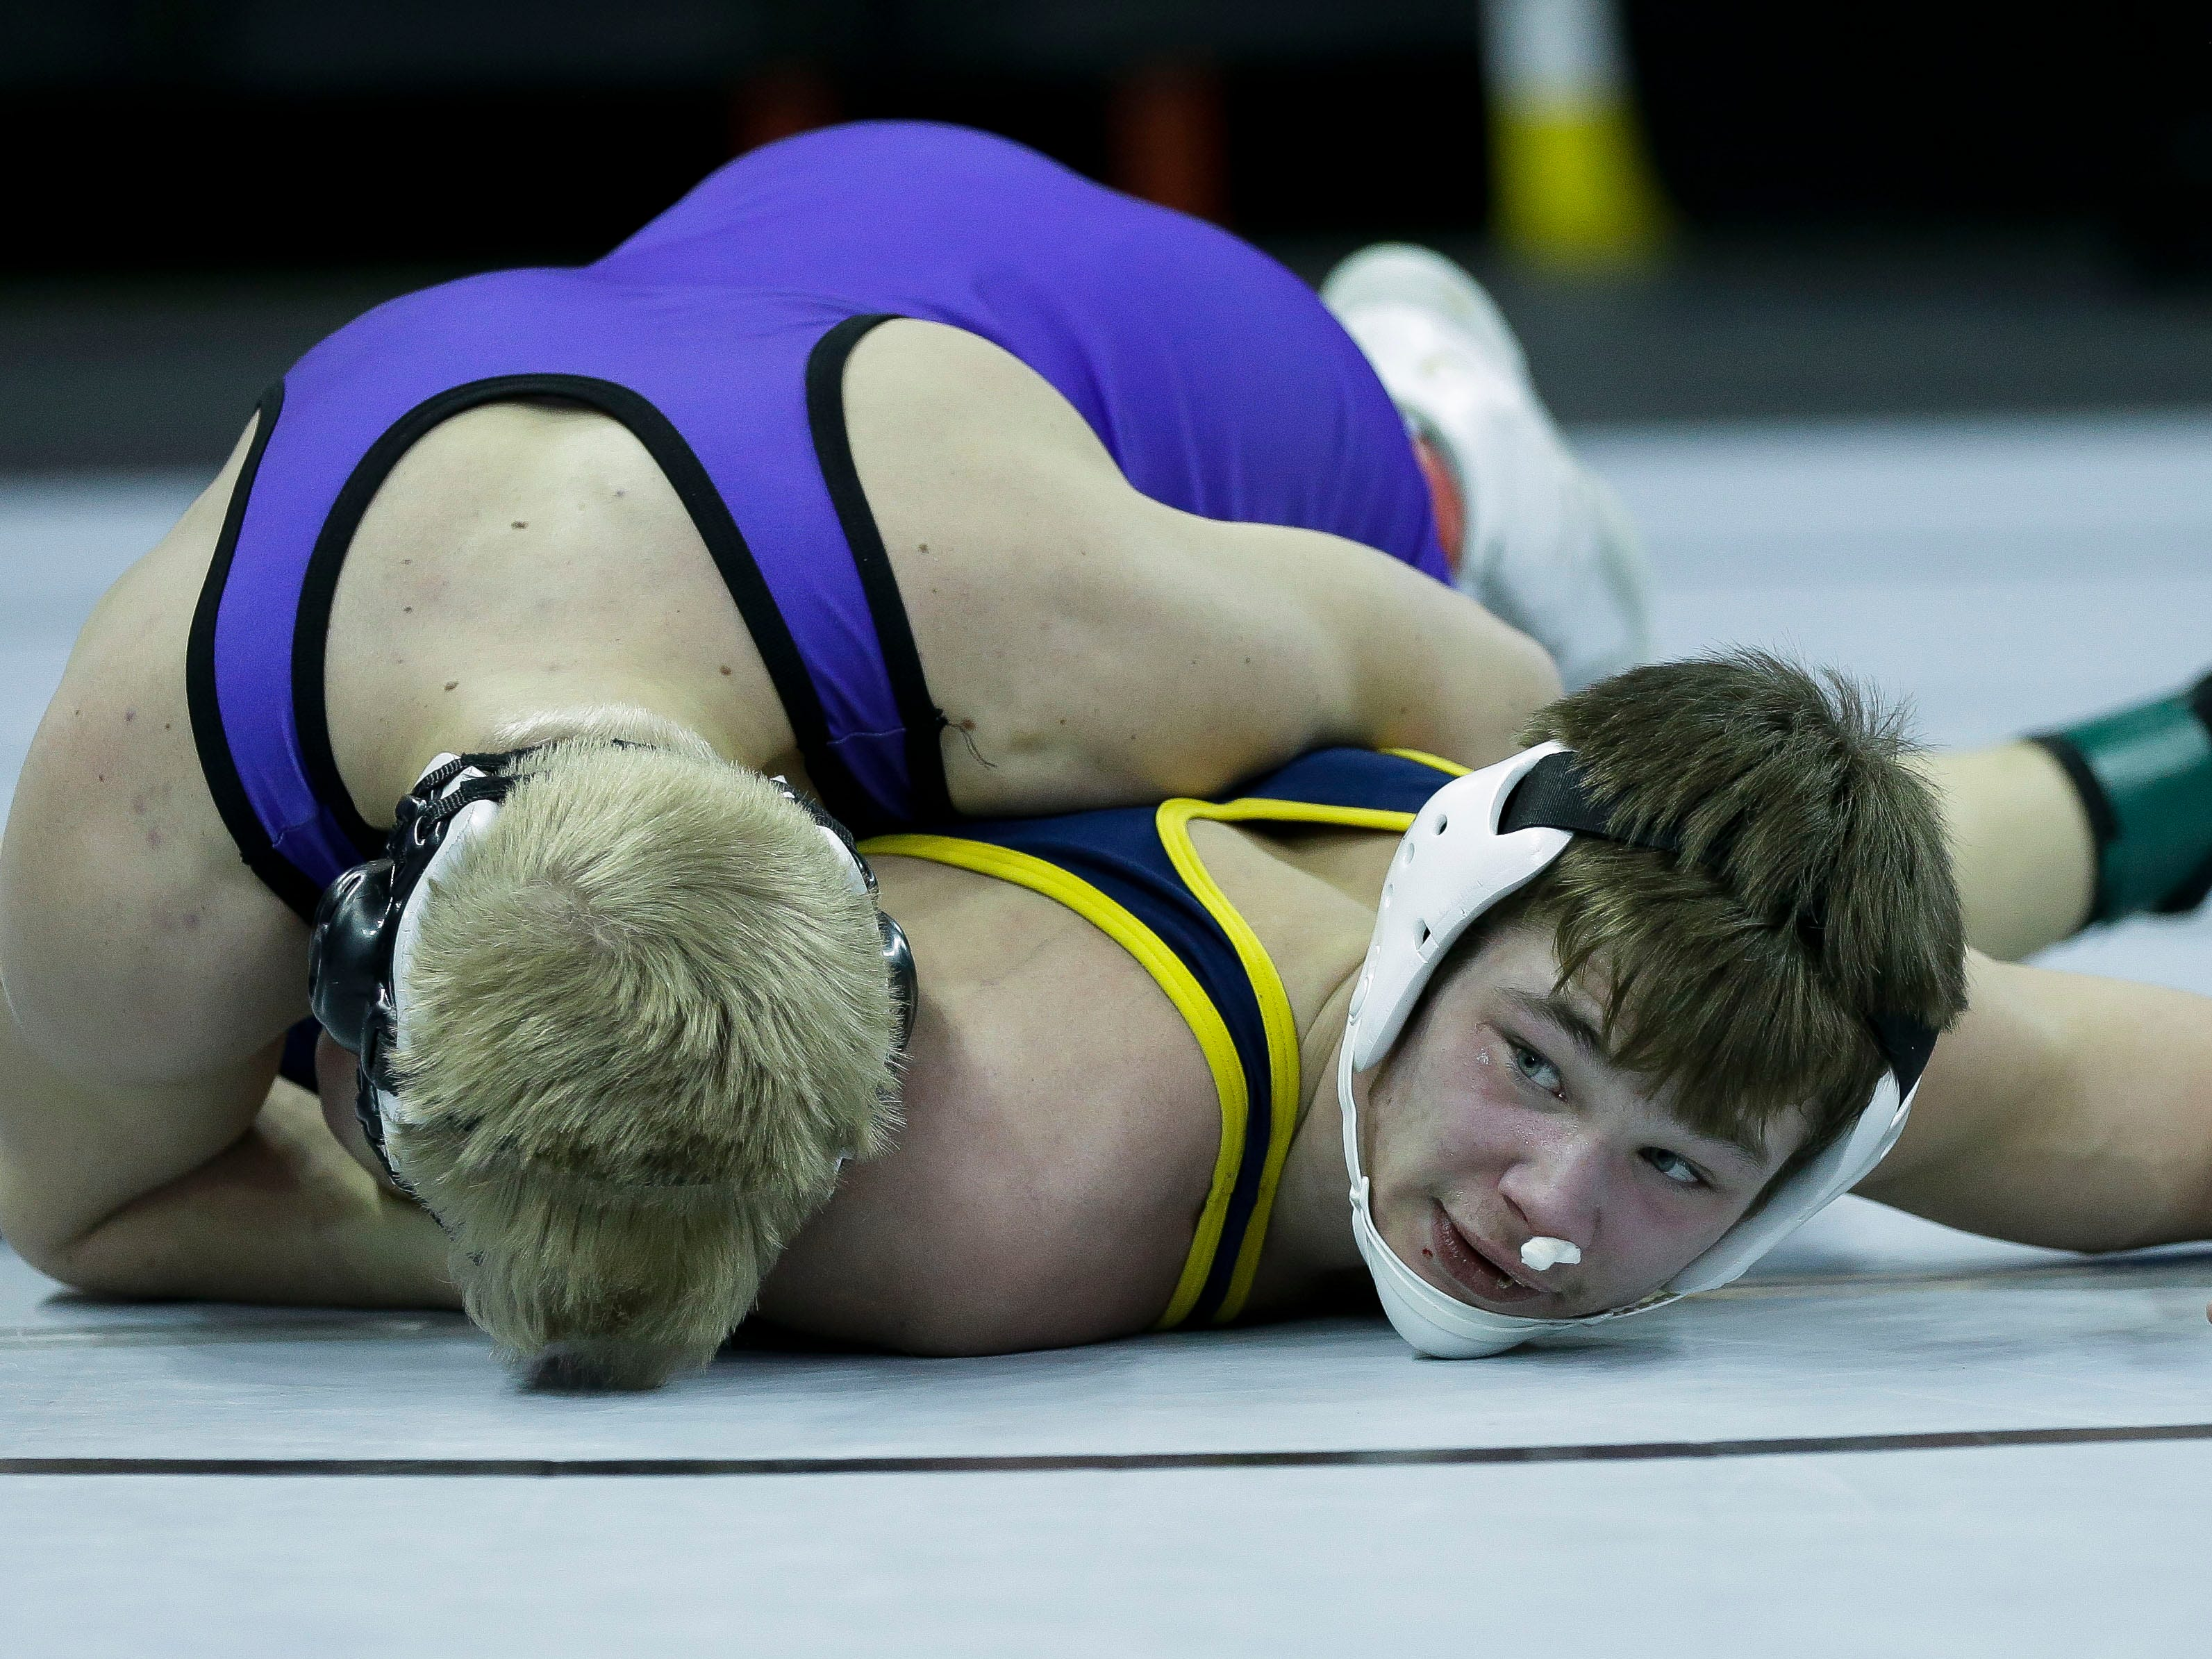 Chilton/Hilbert's Gaven Lisowe looks to his coaches for instruction in a Division 2 152-pound preliminary match during the WIAA state wrestling tournament on Thursday, February 21, 2019, at the Kohl Center in Madison, Wis.